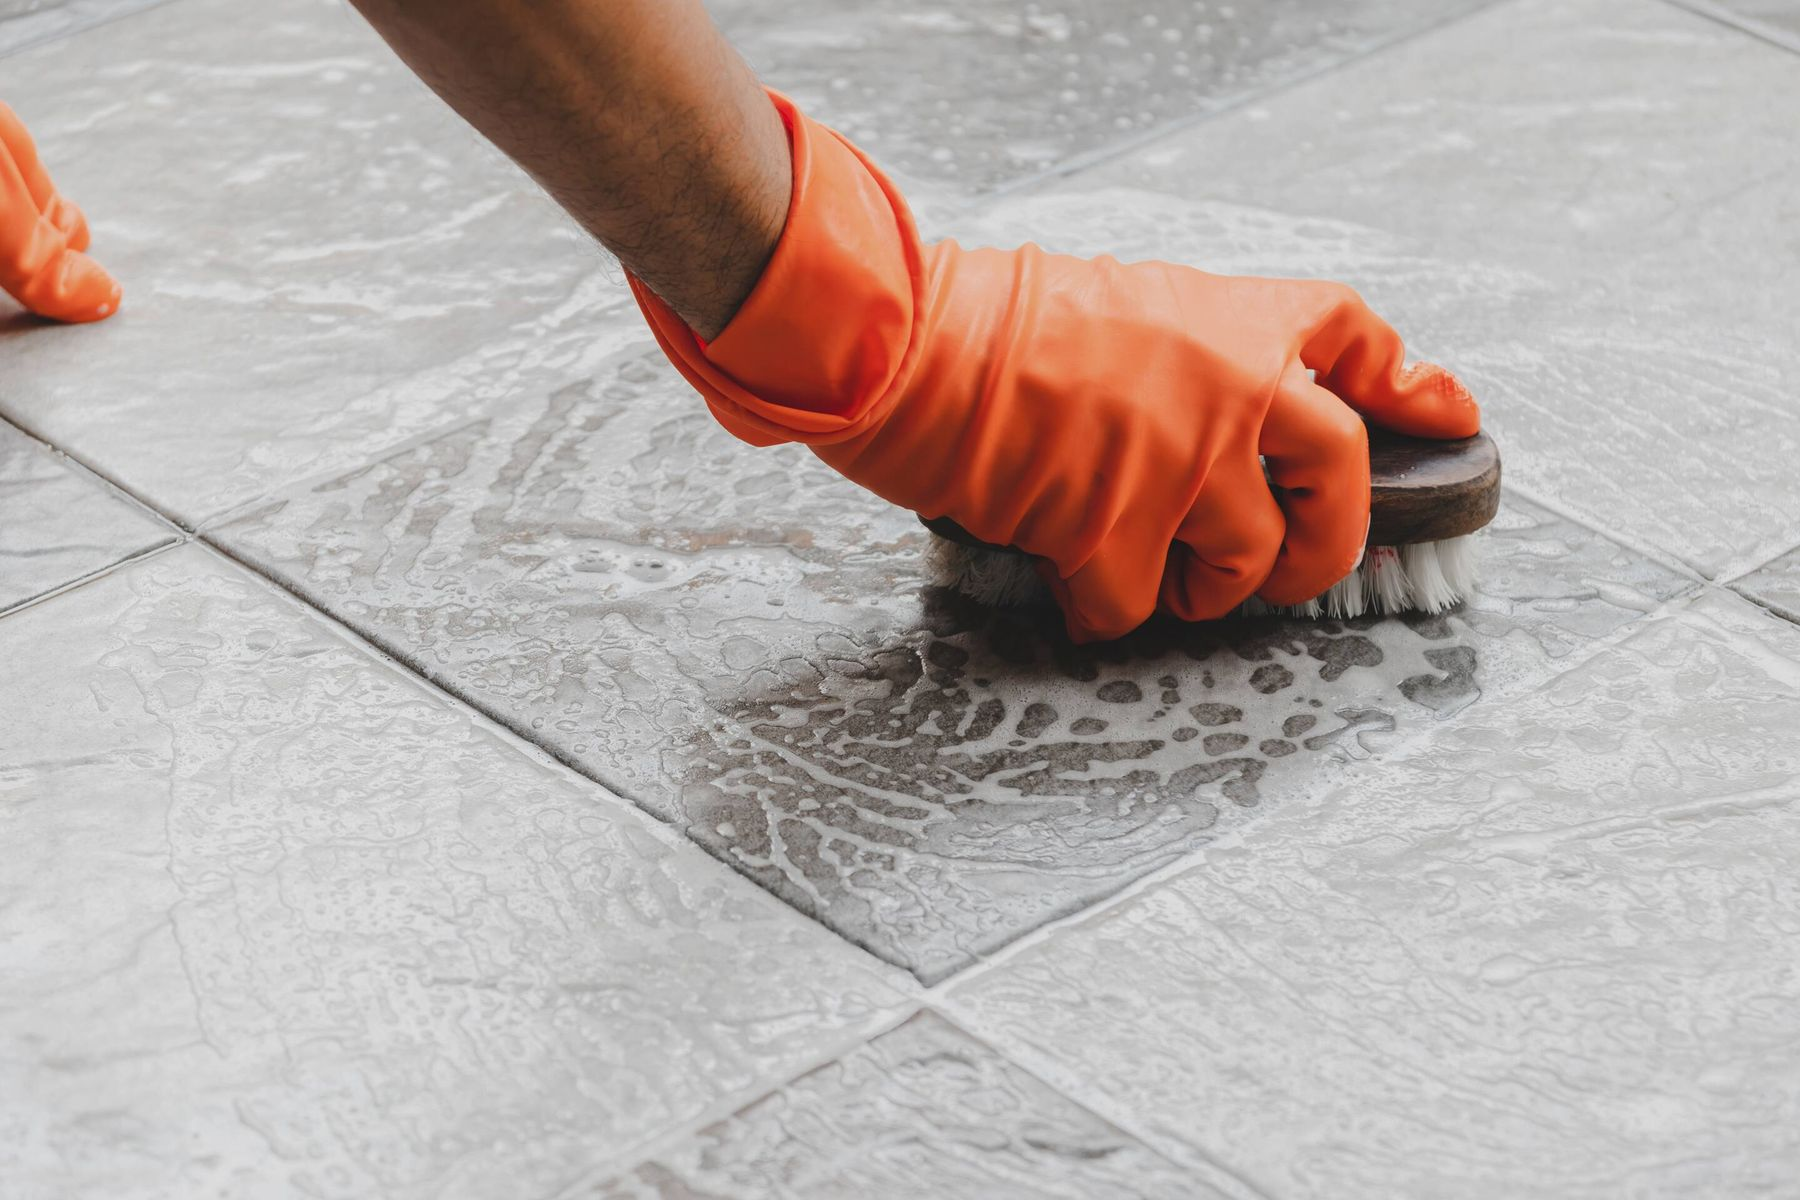 hand scrubbing kitchen tiles